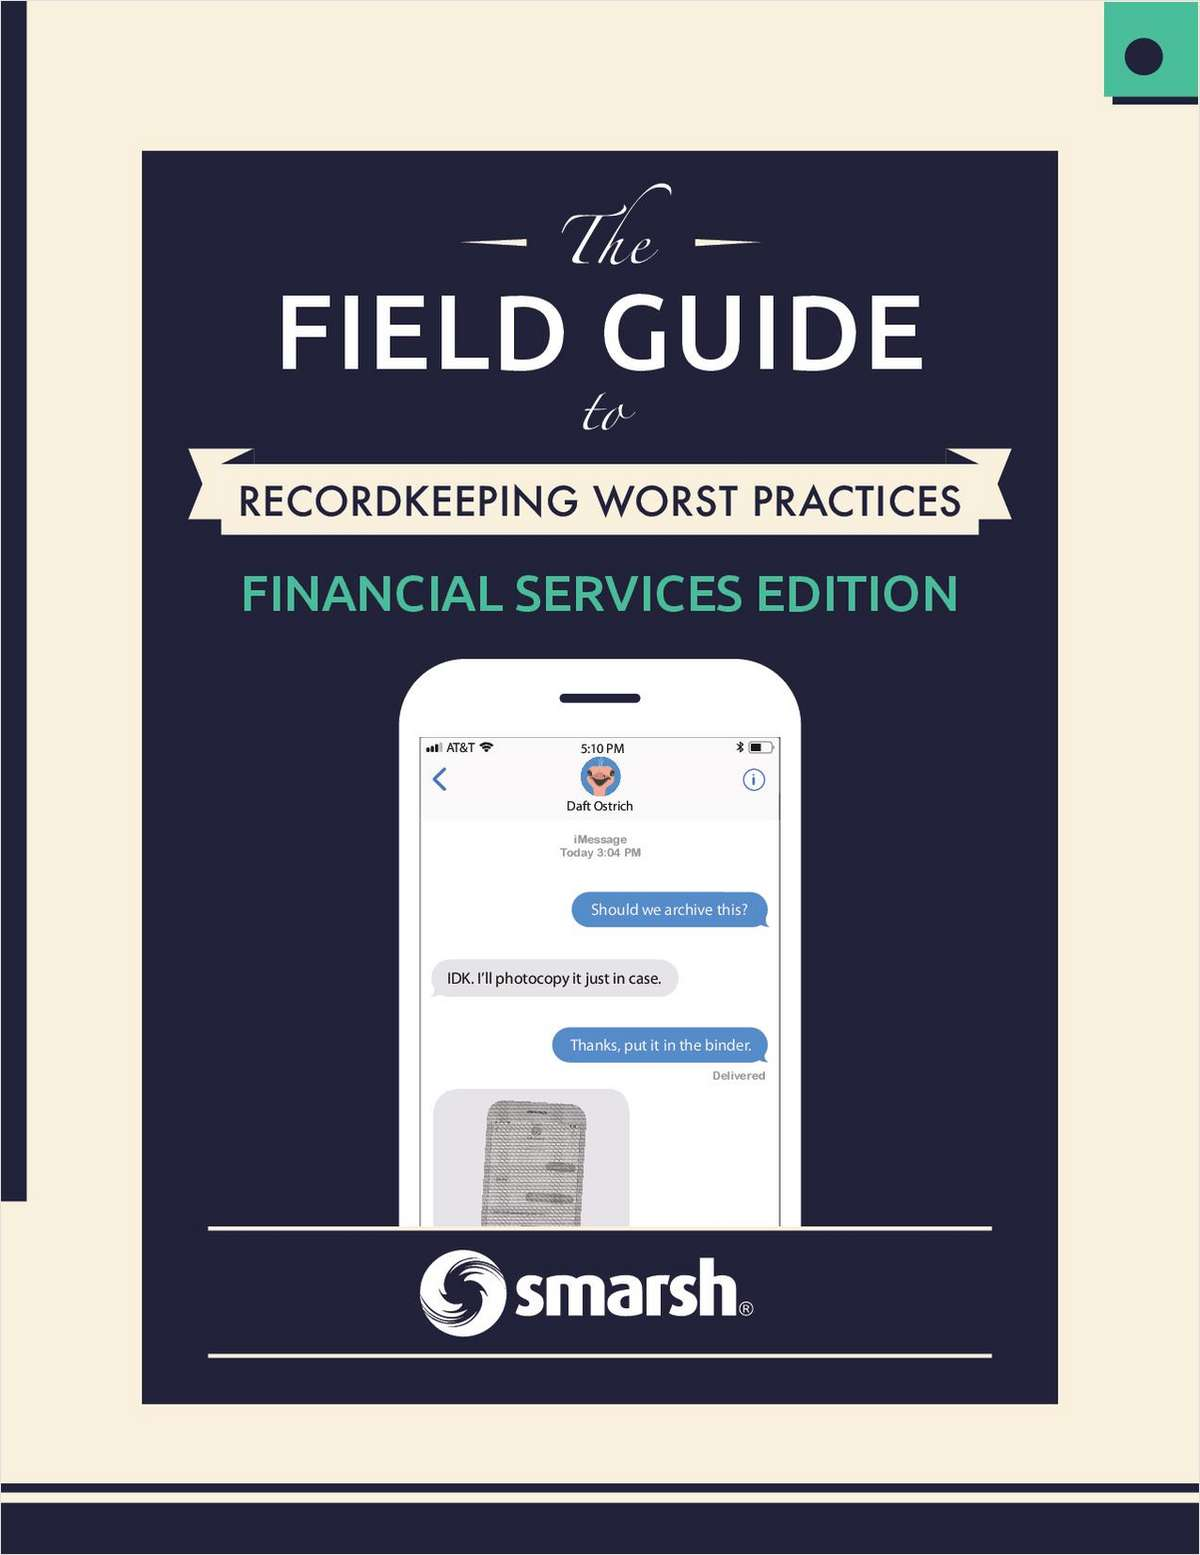 The Field Guide to Recordkeeping Worst Practices